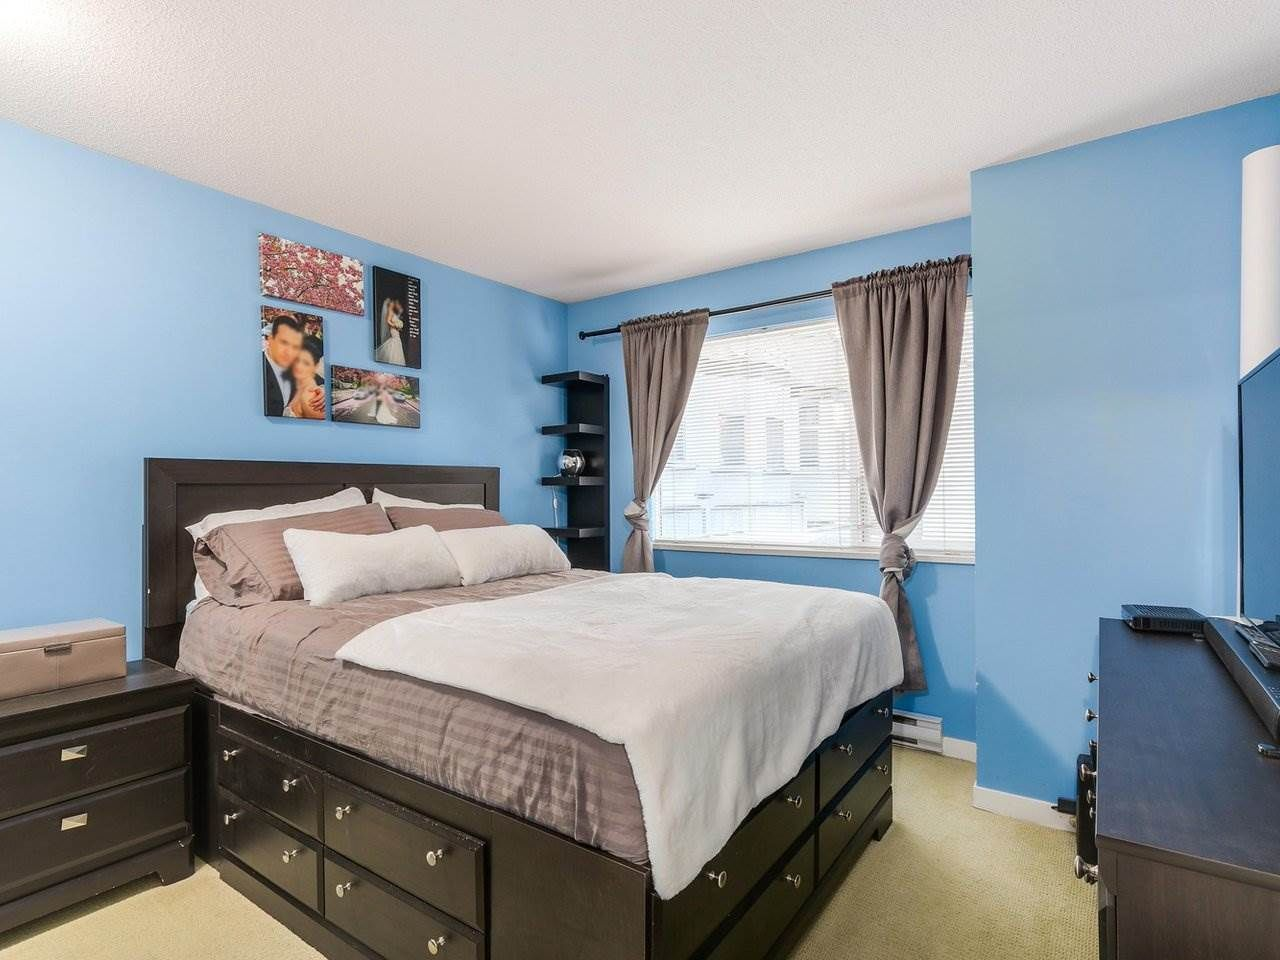 Photo 12: Photos: 119 672 W 6TH AVENUE in Vancouver: Fairview VW Townhouse for sale (Vancouver West)  : MLS®# R2401186